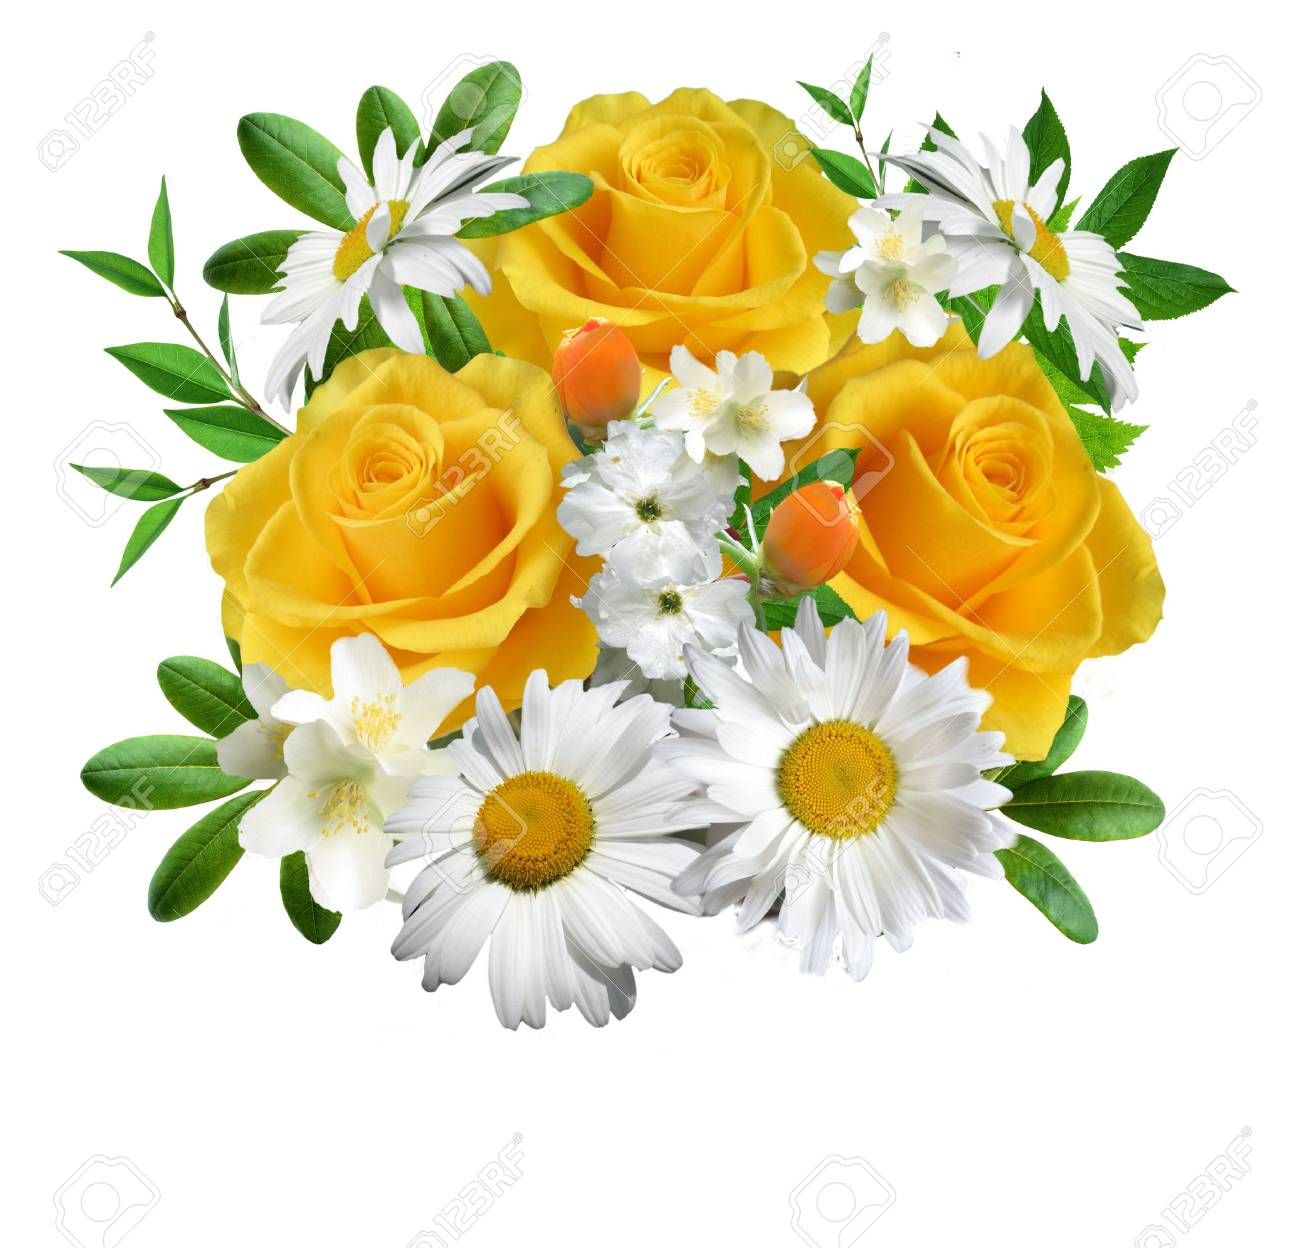 Collage  from flowers on a white background Stock Photo - 4538952